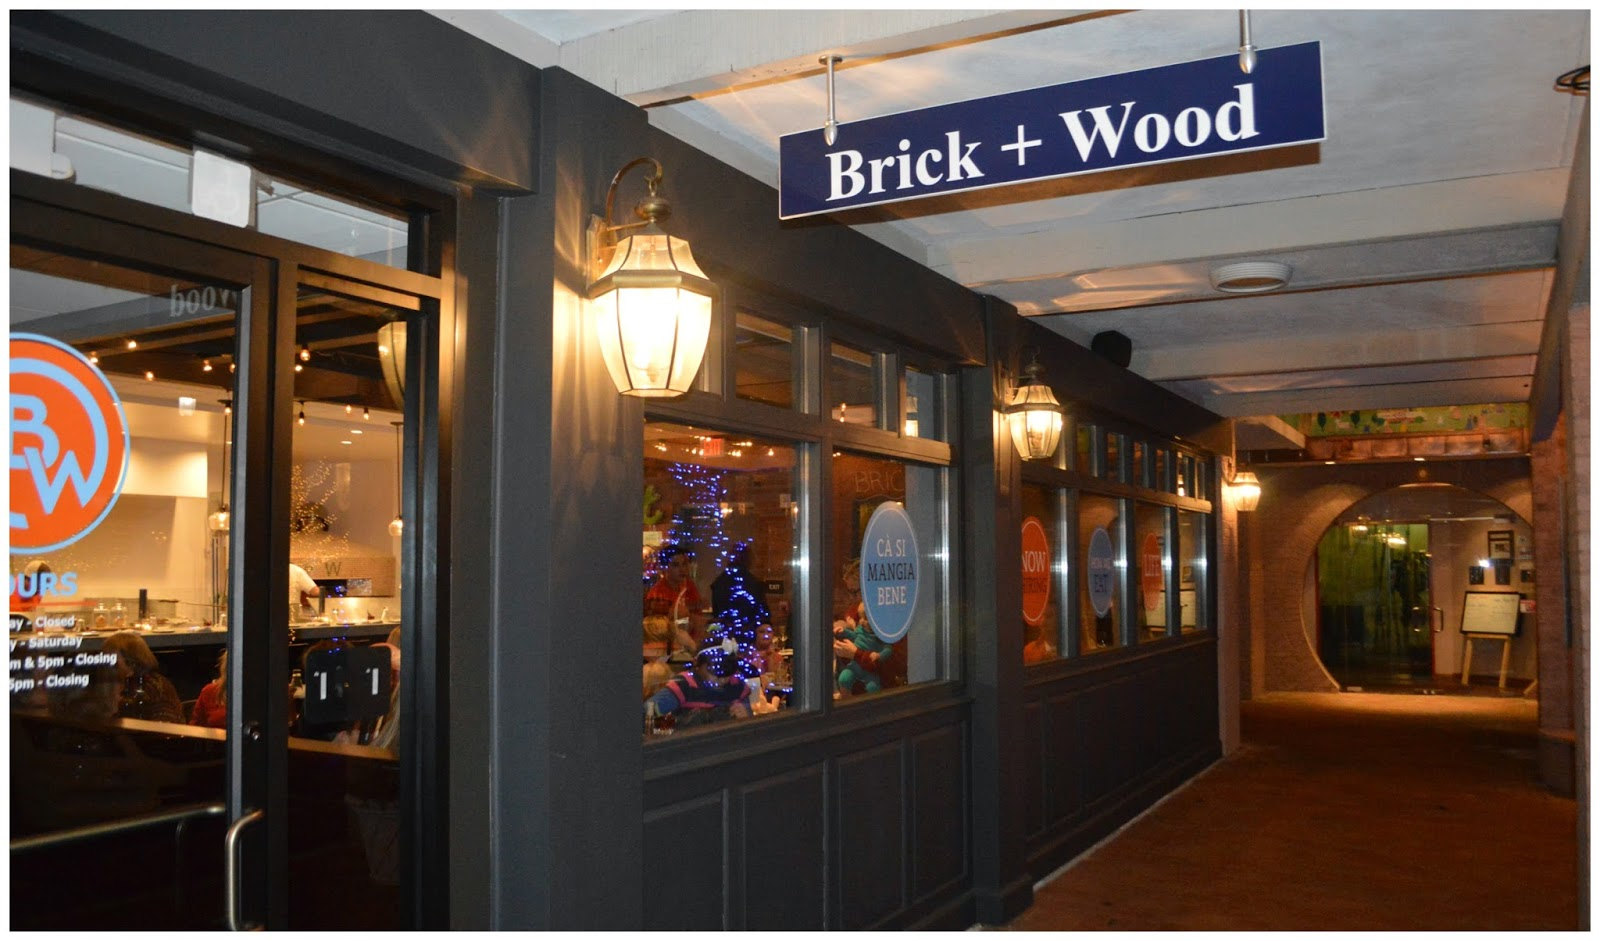 Home place brick wood in fairfield ct love life and pizza - Brick and wood house ...